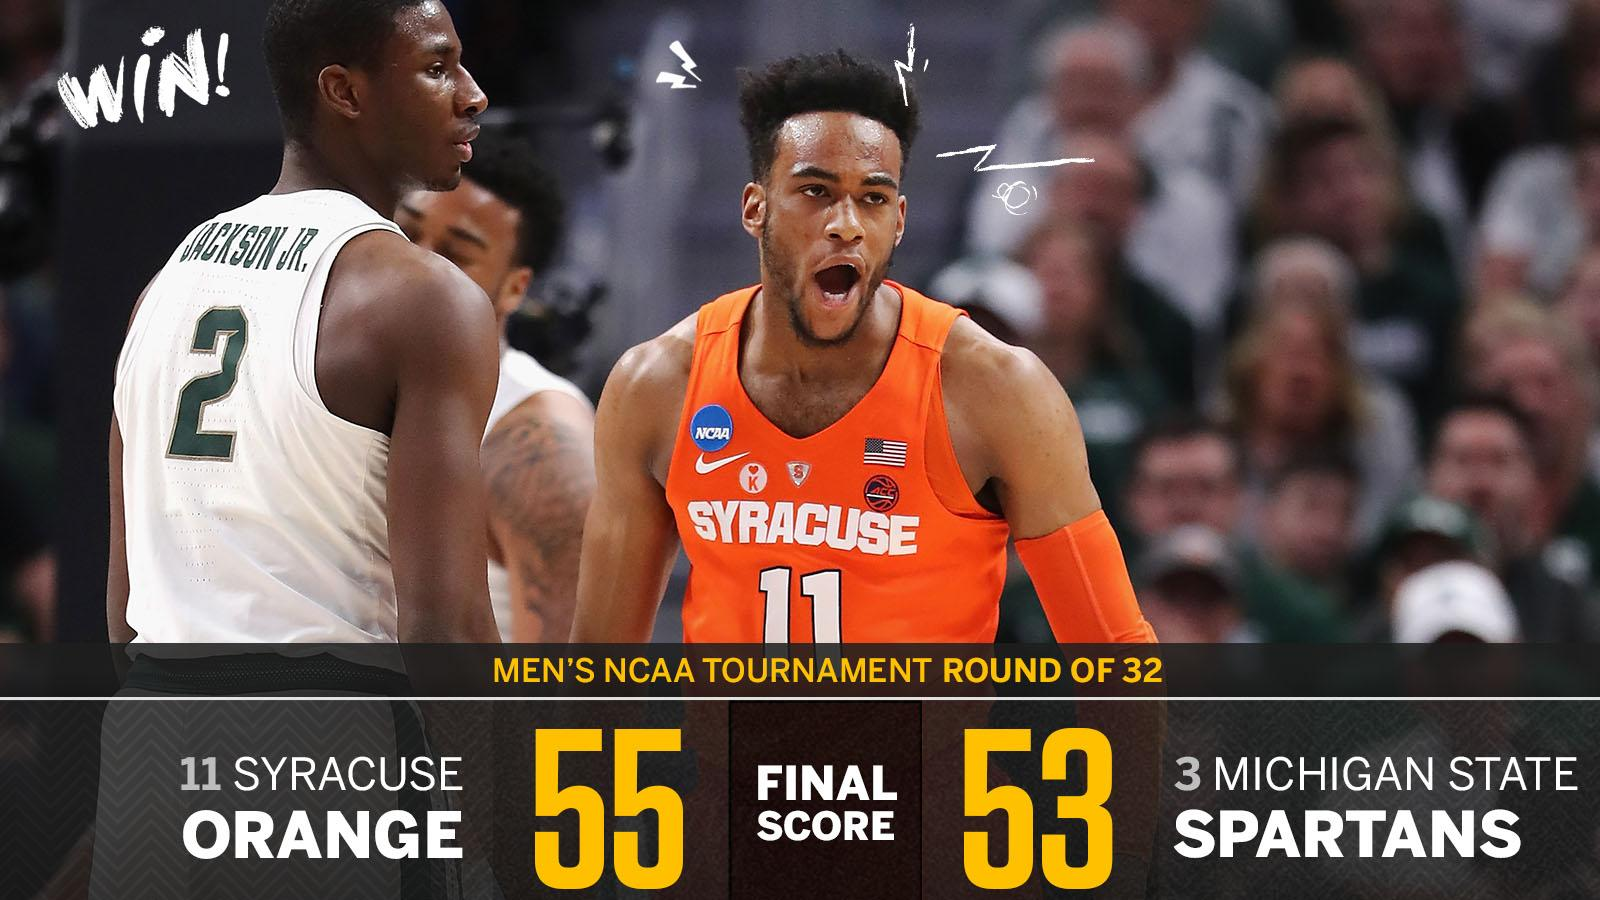 DOWN GO THE SPARTANS!  Syracuse upsets Michigan State to punch its ticket to a 19th Sweet 16! https://t.co/KERiyQv3wr